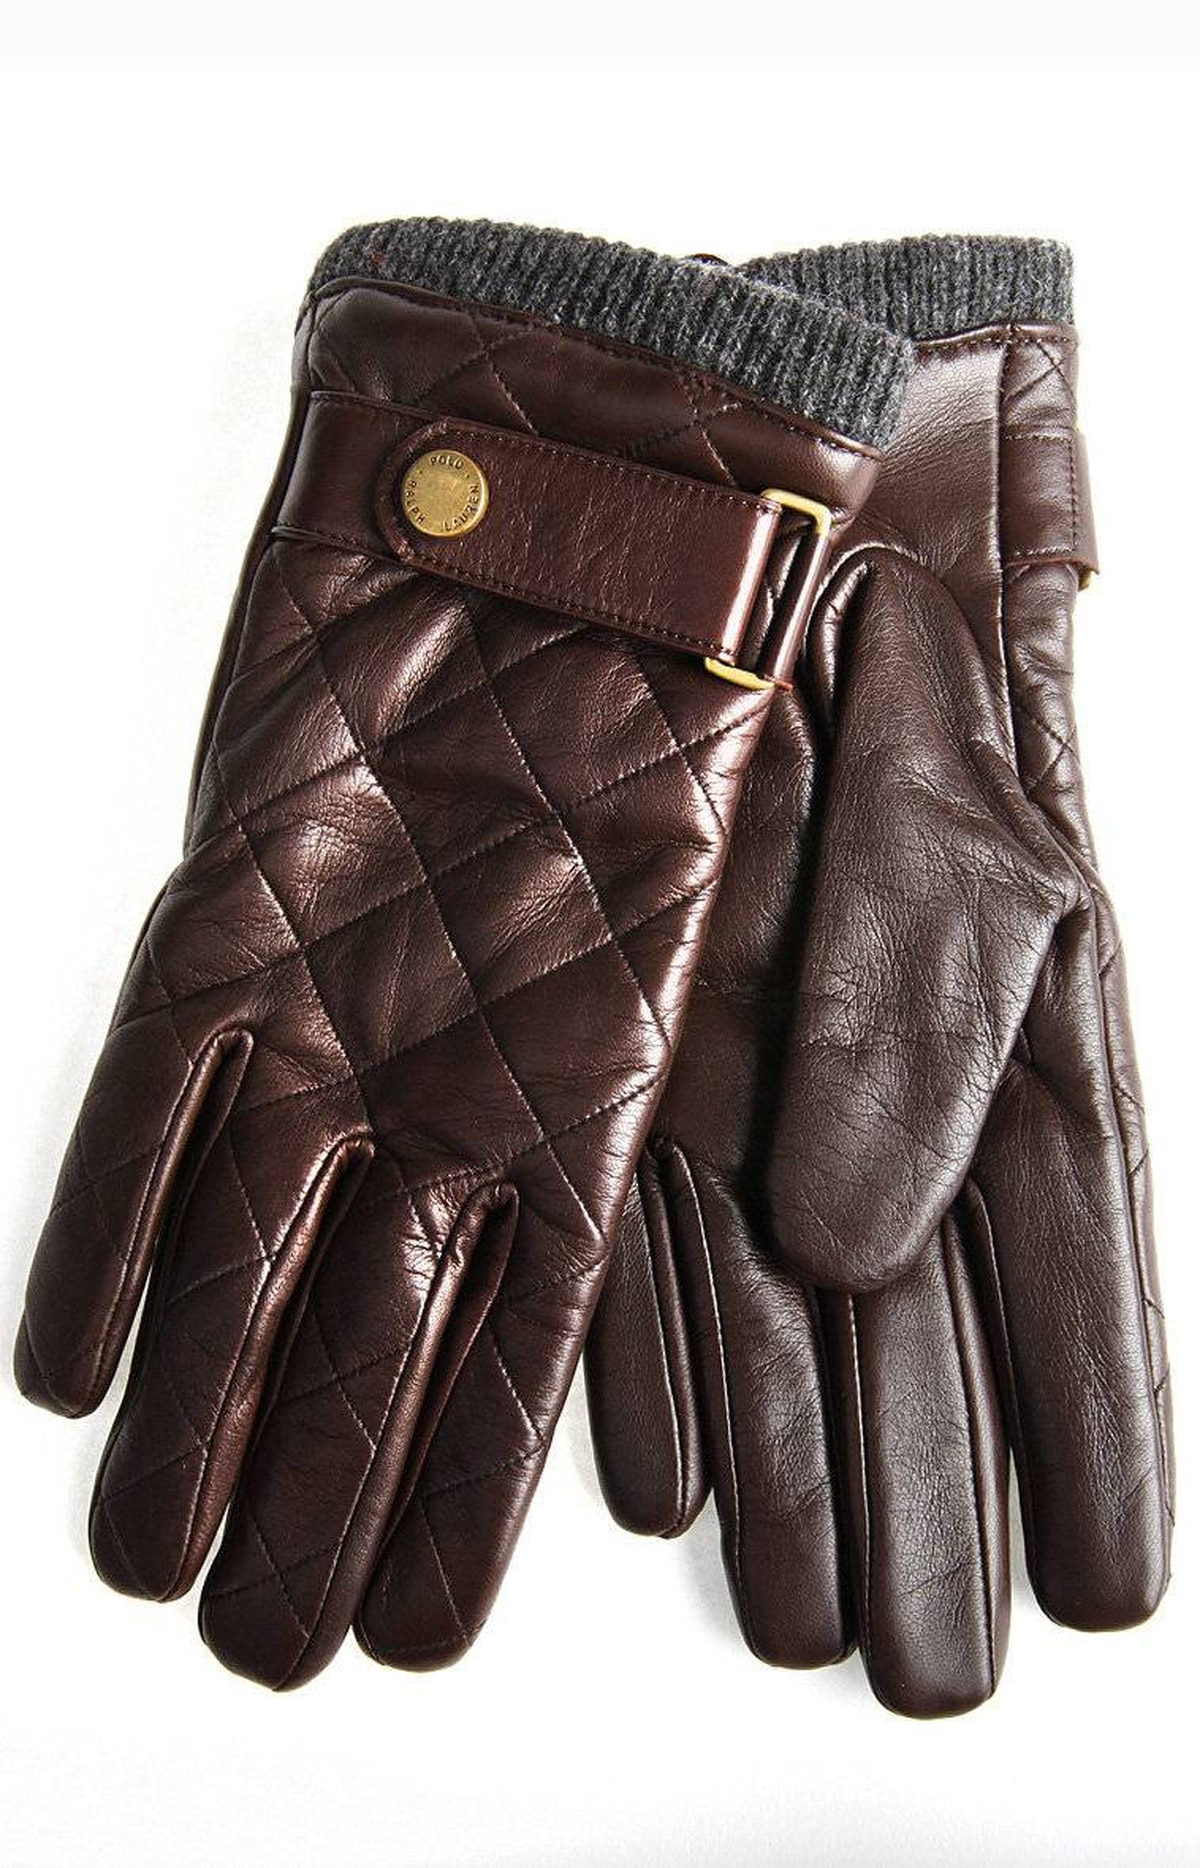 Brown Ralph Lauren gloves, $98 at the Bay (www.hbc.com).